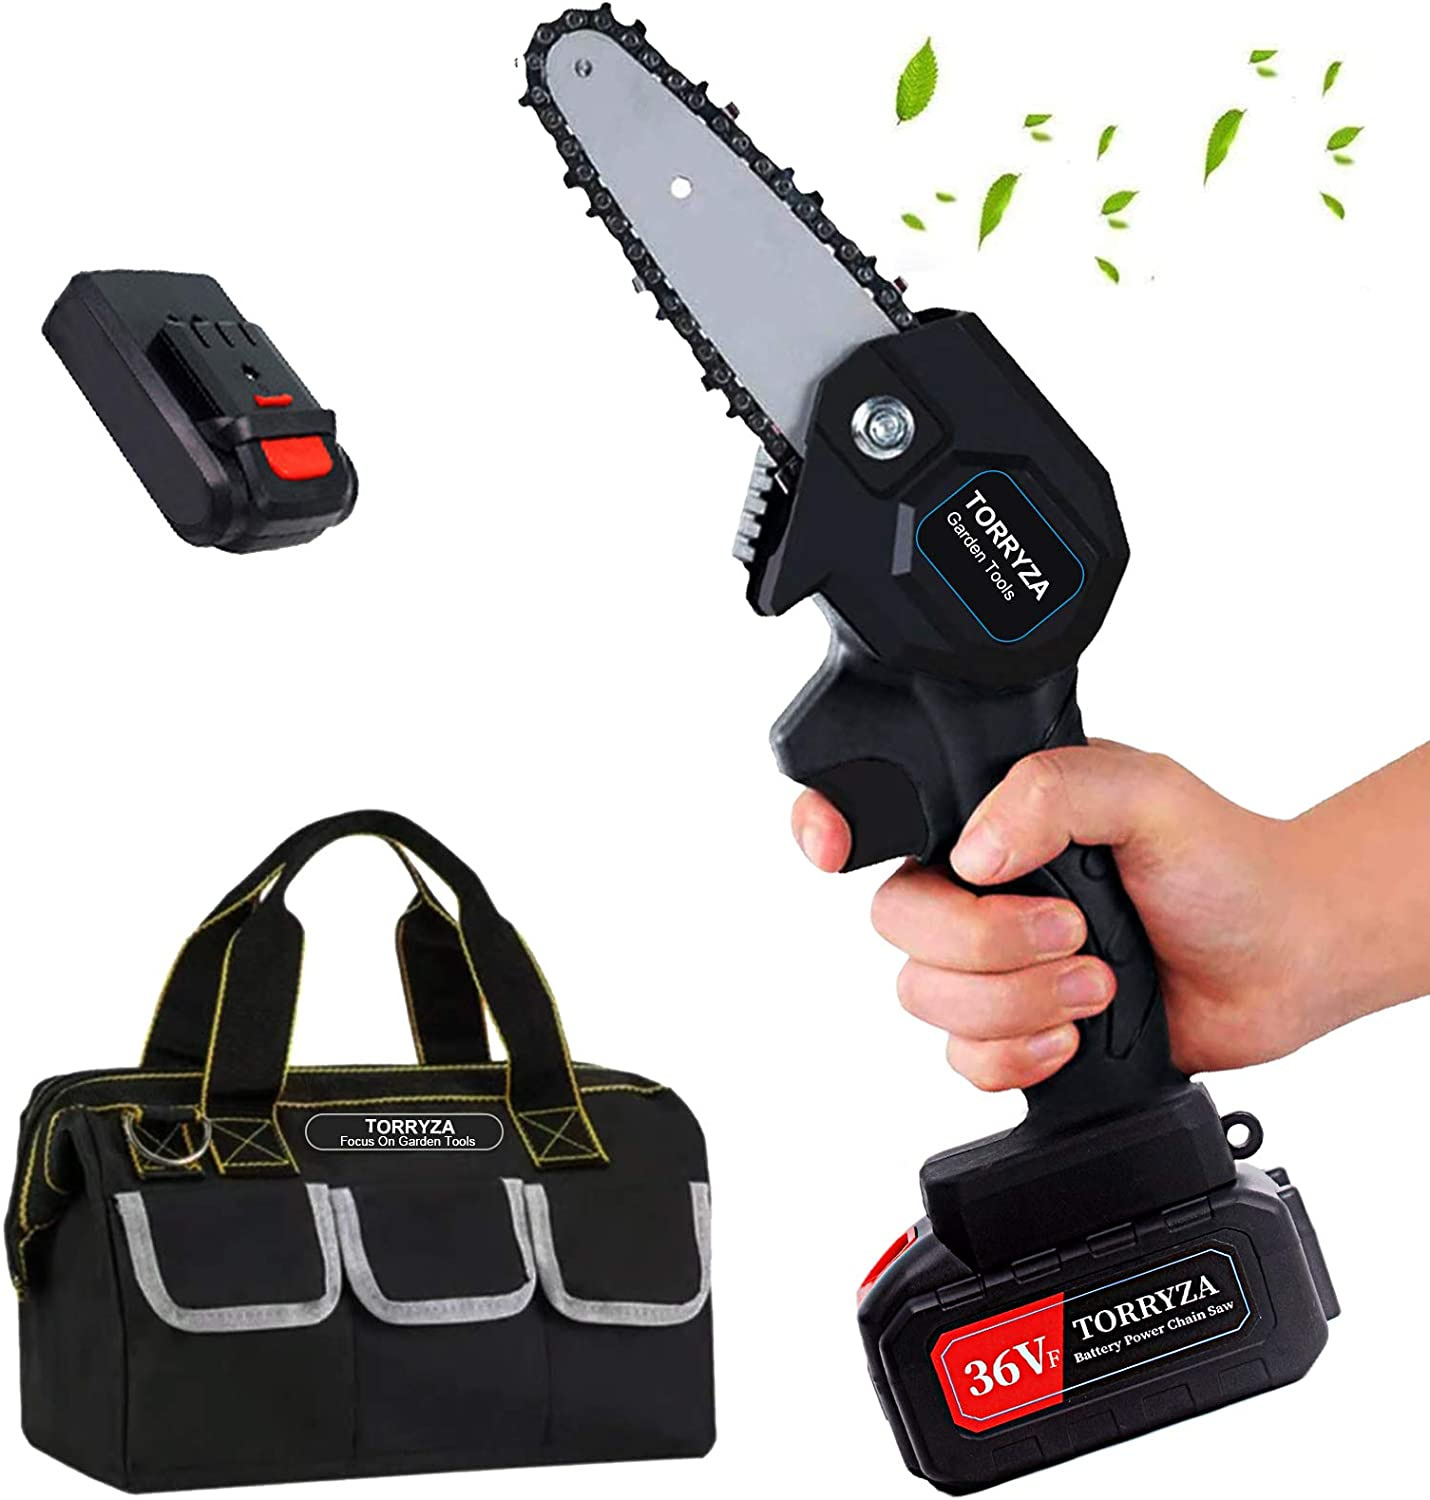 TORRYZA Mini Chainsaw 4-Inch One-Hand Excellence Portable Cordless Max 84% OFF